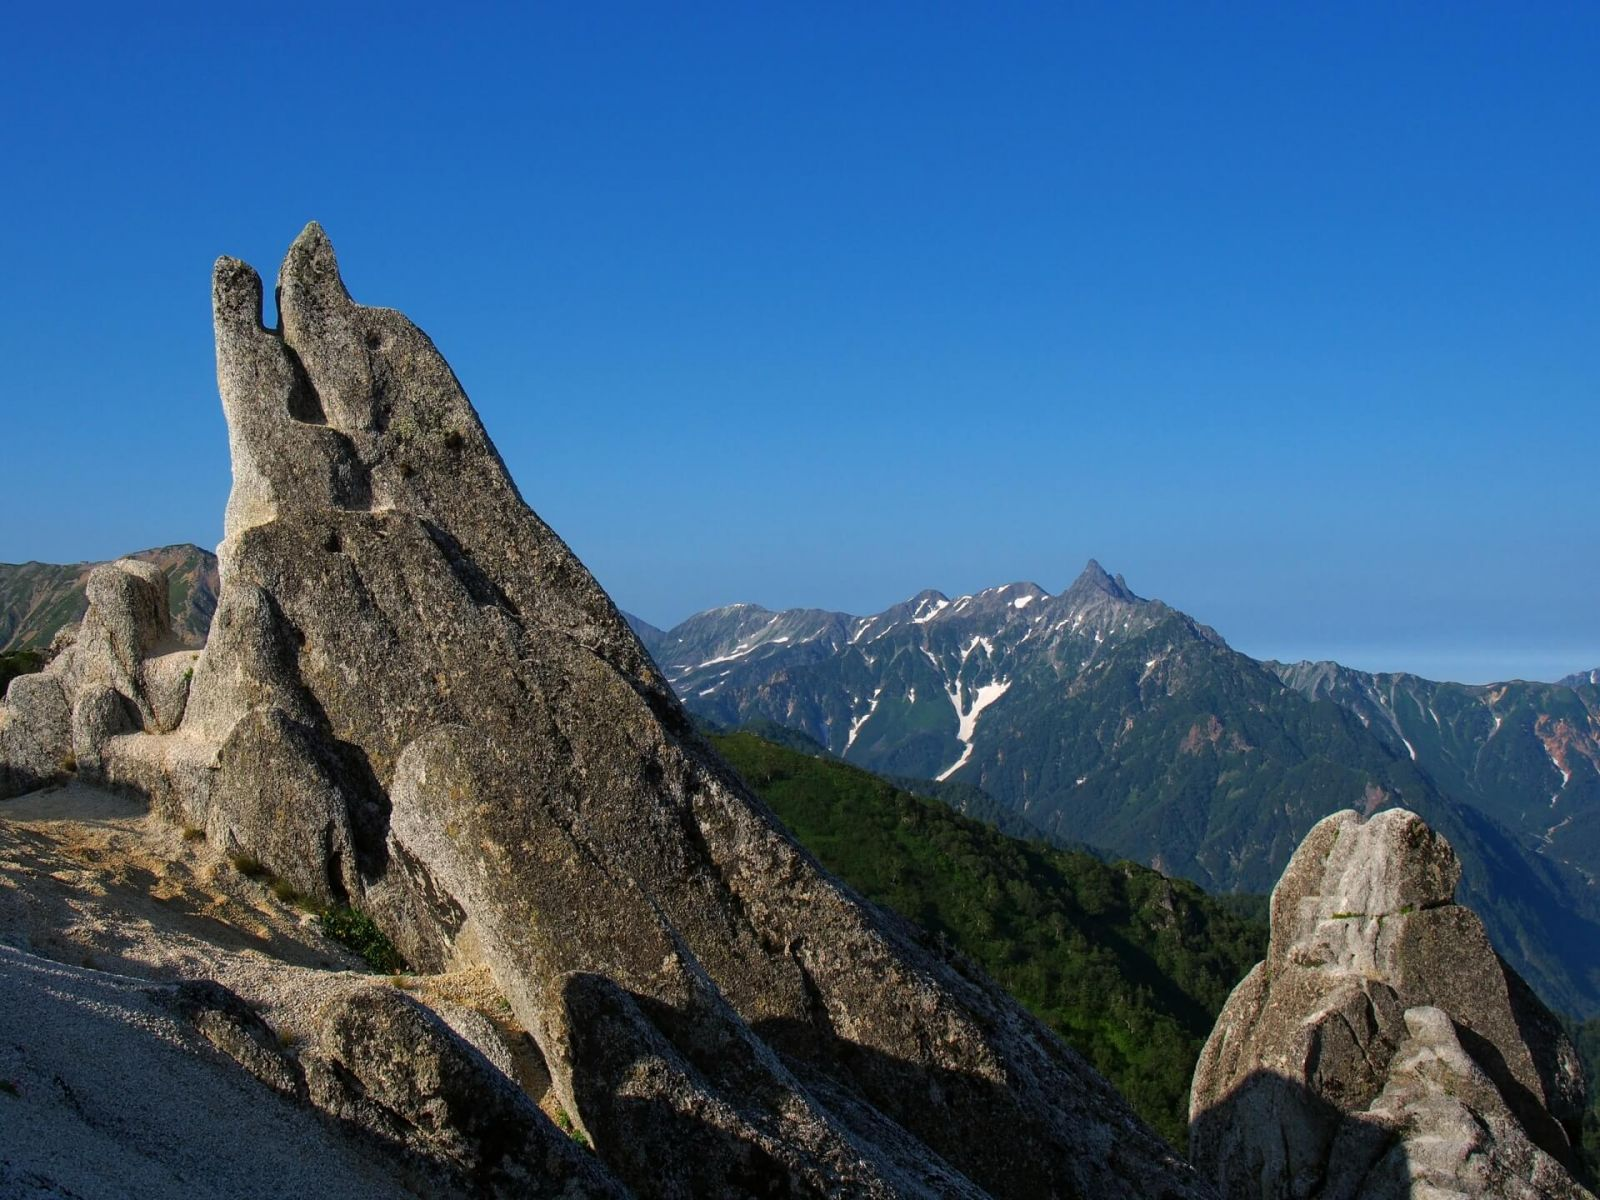 Hike Japan's North Alps Mountain Trails